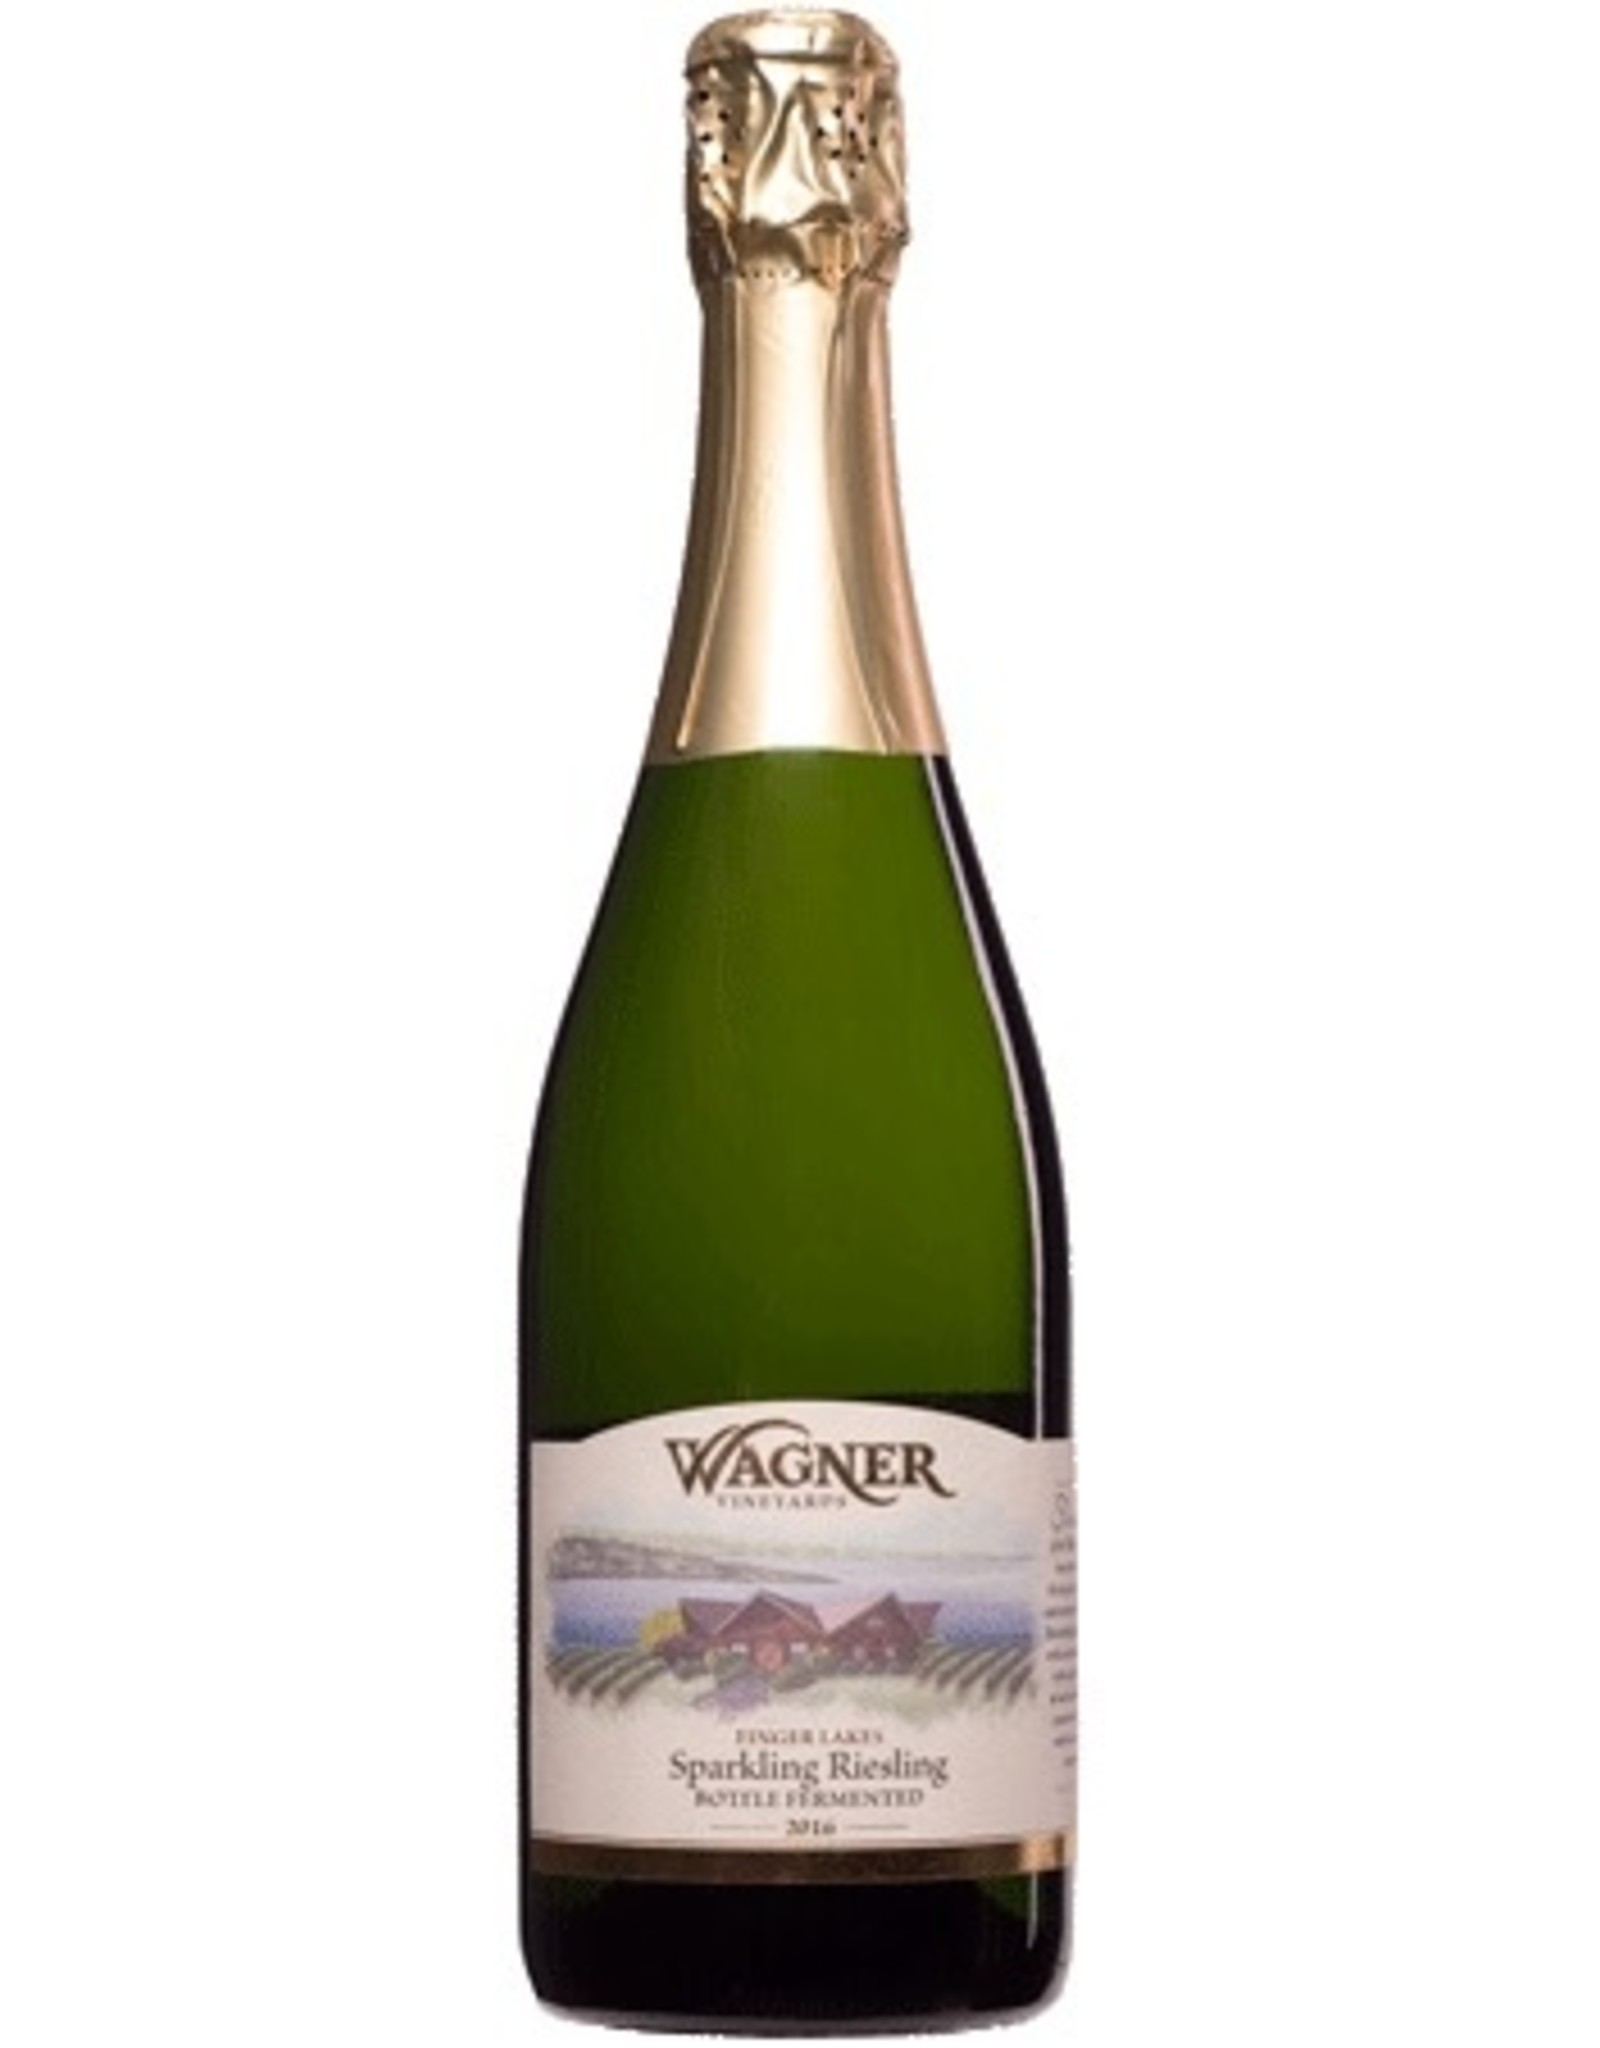 Red Wine 2016, Wagner, Sparkling Dry Rieseling, Seneca Lake, Finger Lakes, New York, 12.6% Alc, CT